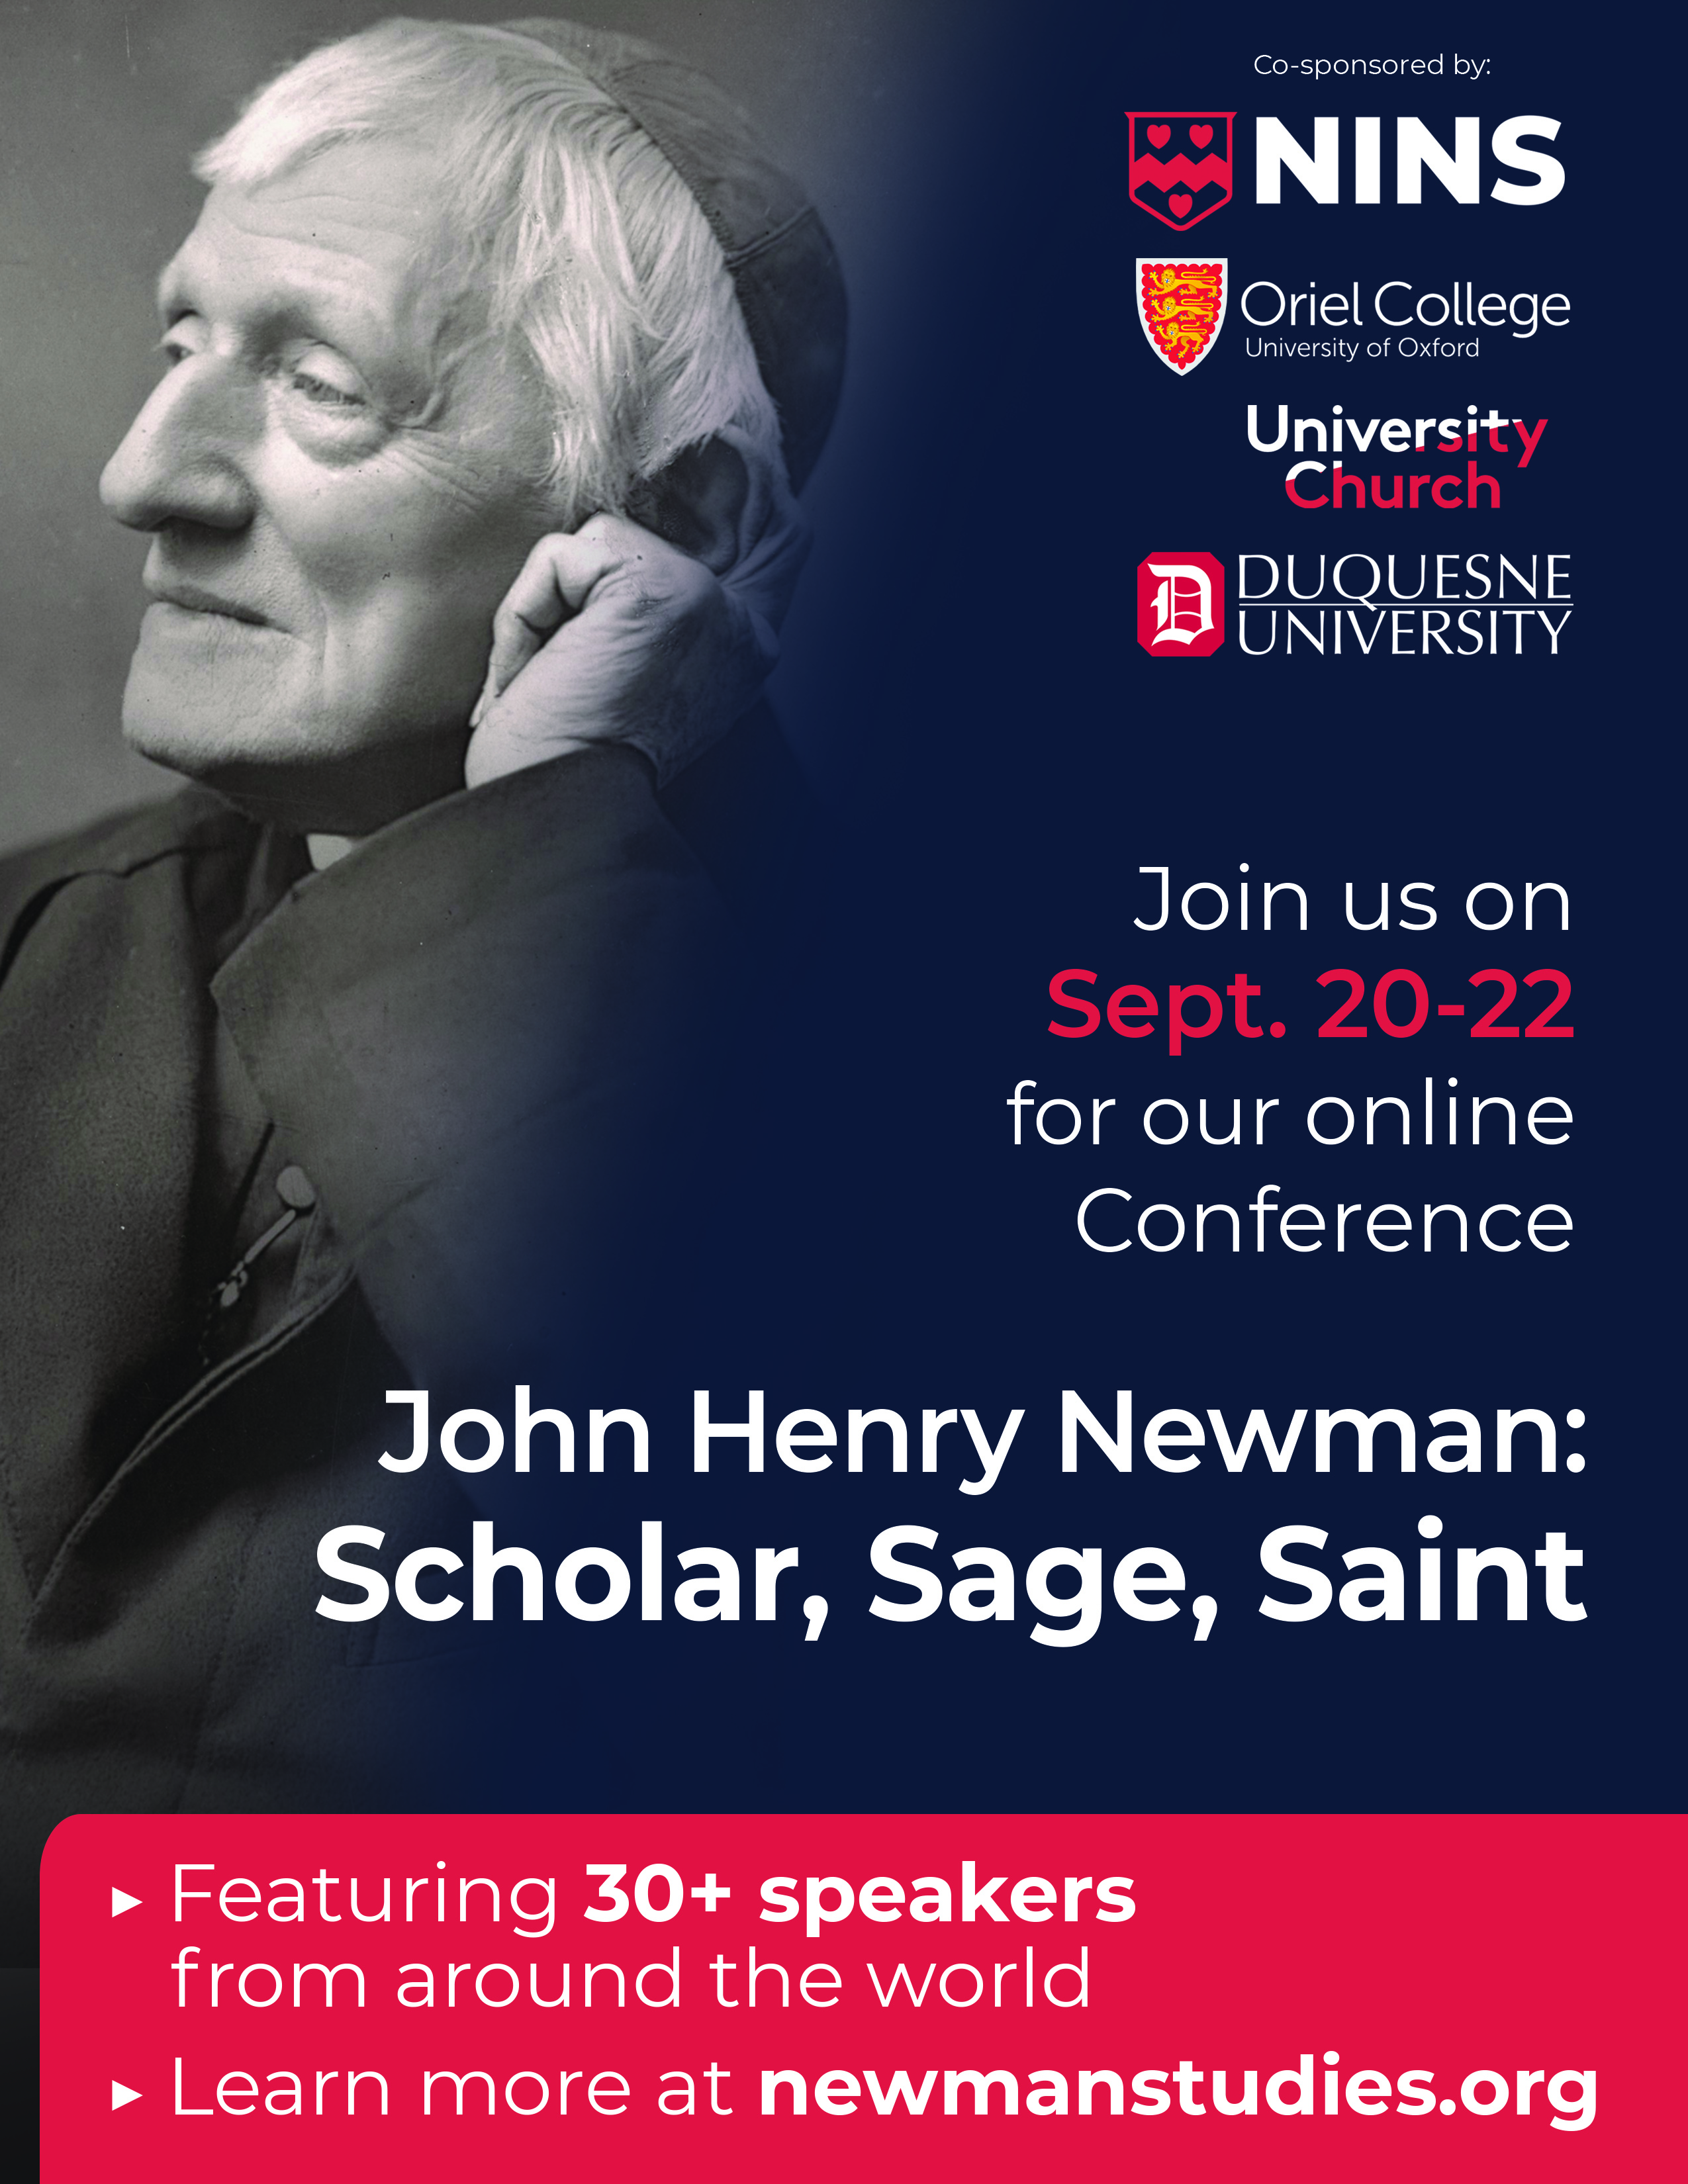 A portrait of John Henry Newman in his later years comprises the bulk of the poster. The conference details described above are conveyed, along with a note that 30+ speakers will be featured from around the world.